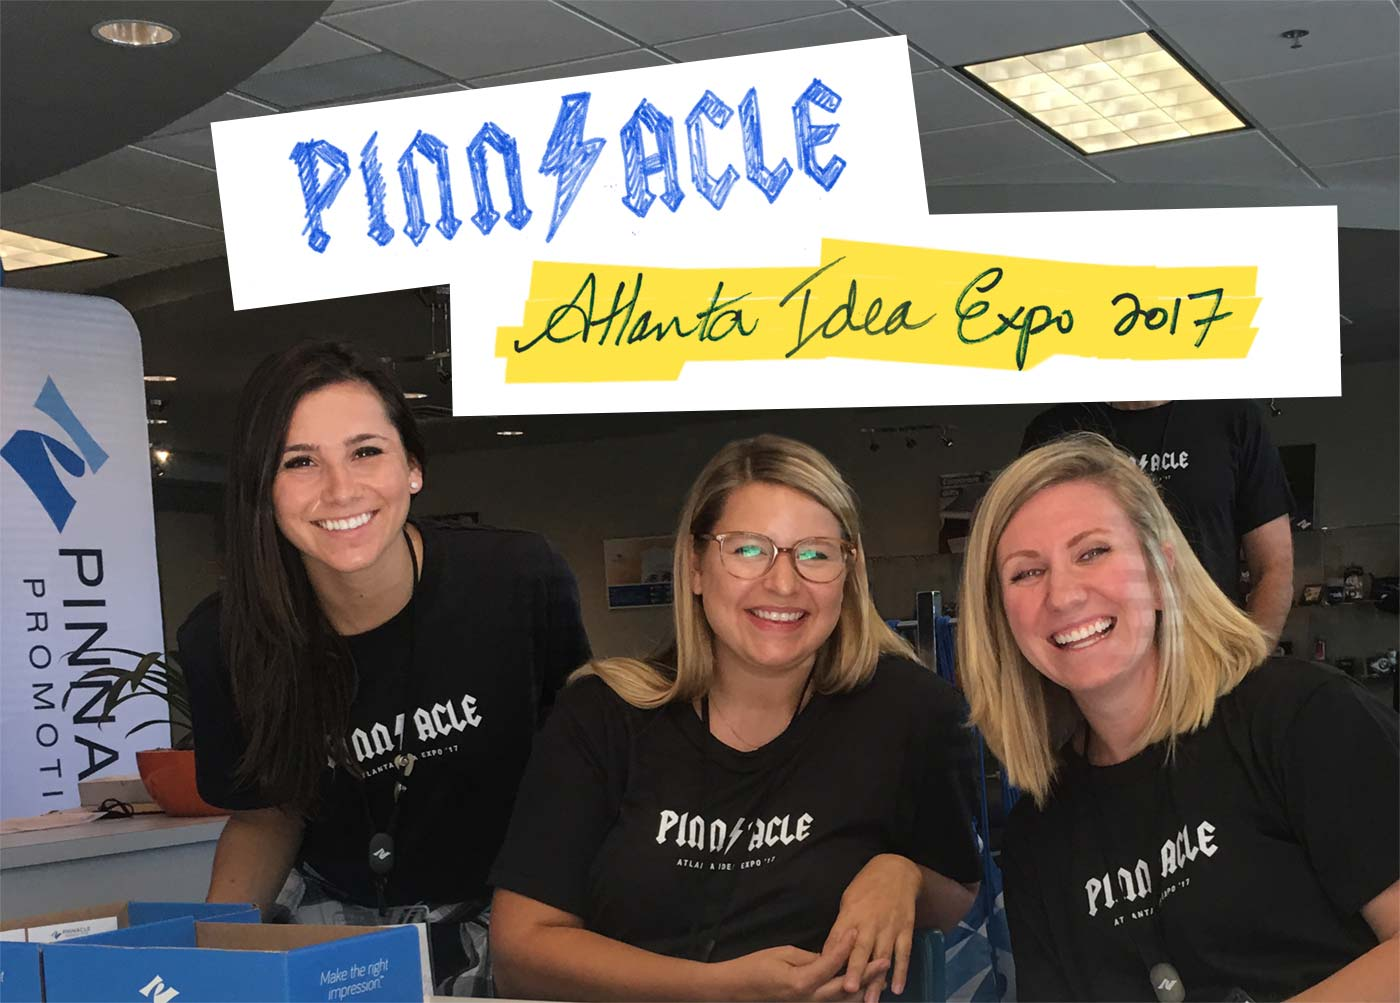 Atlanta Idea Expo 2017: Pinnacle Rocks Brands, Rolls Out Red Carpet for Vendors and Buyers